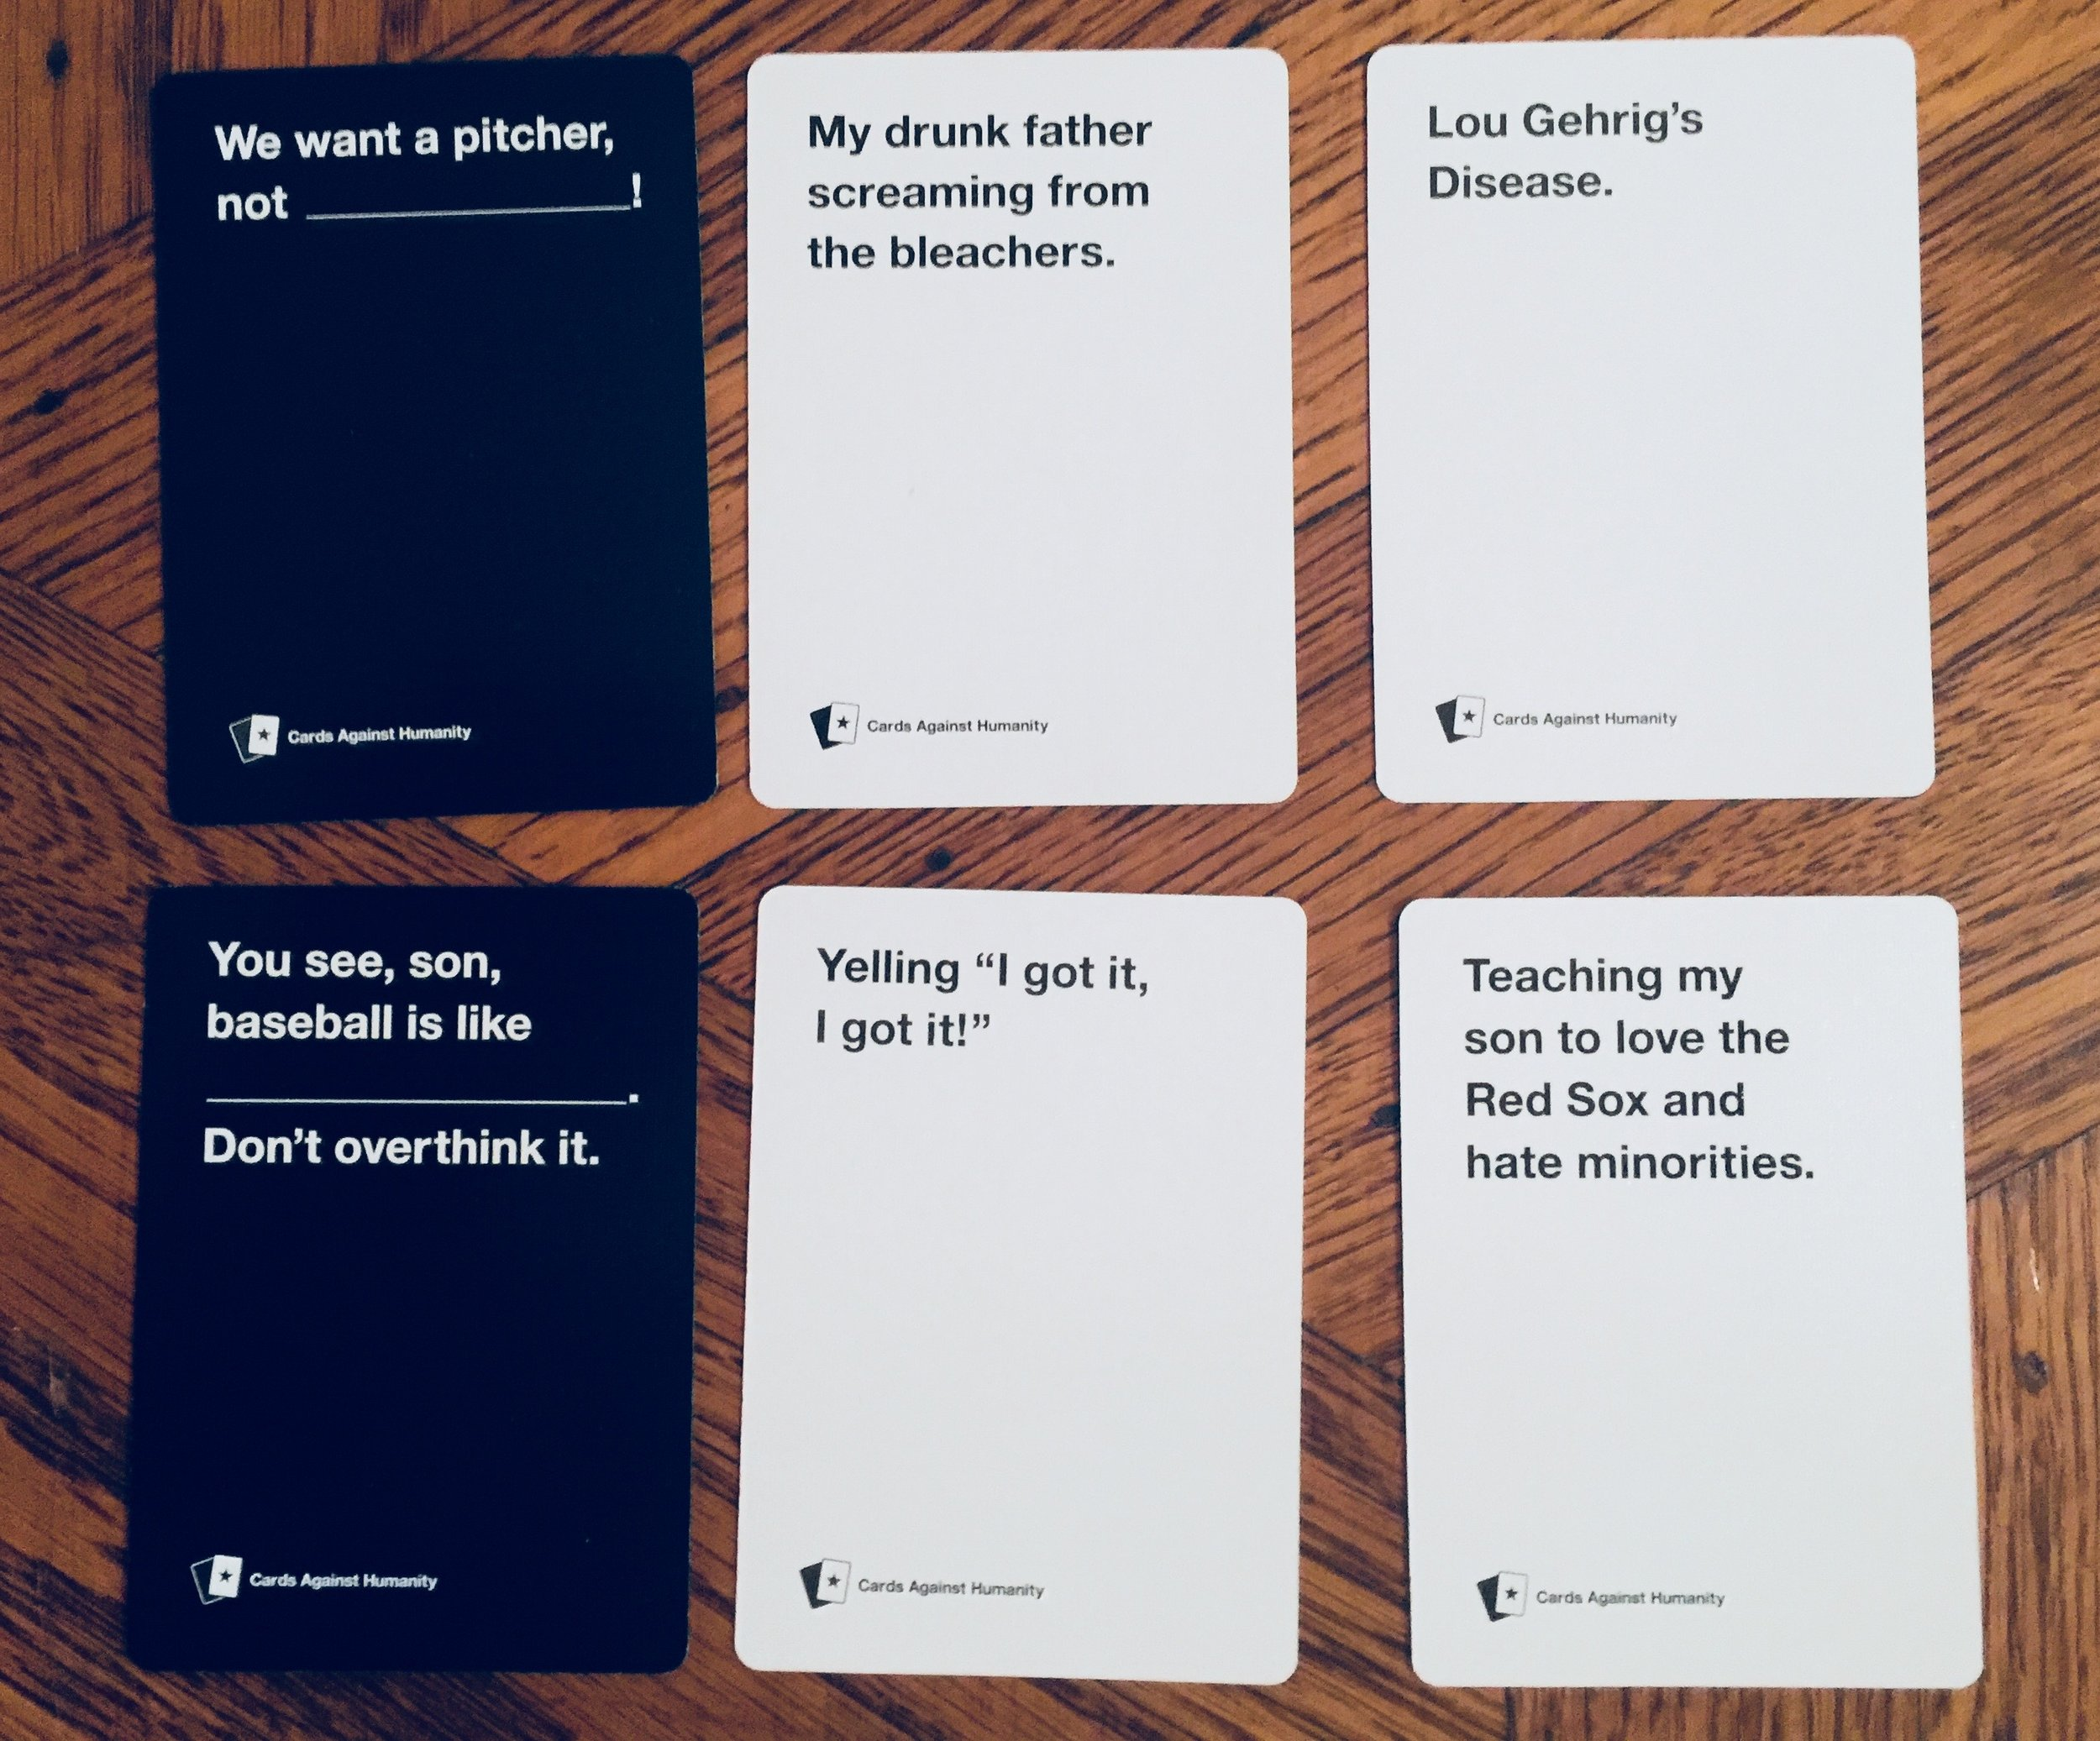 Image of: Feminist And Finally Heres Some Of The Other Things That Received Buzzfeed Cards Against Humanity Xmas 2017 Campaign Murray Gm